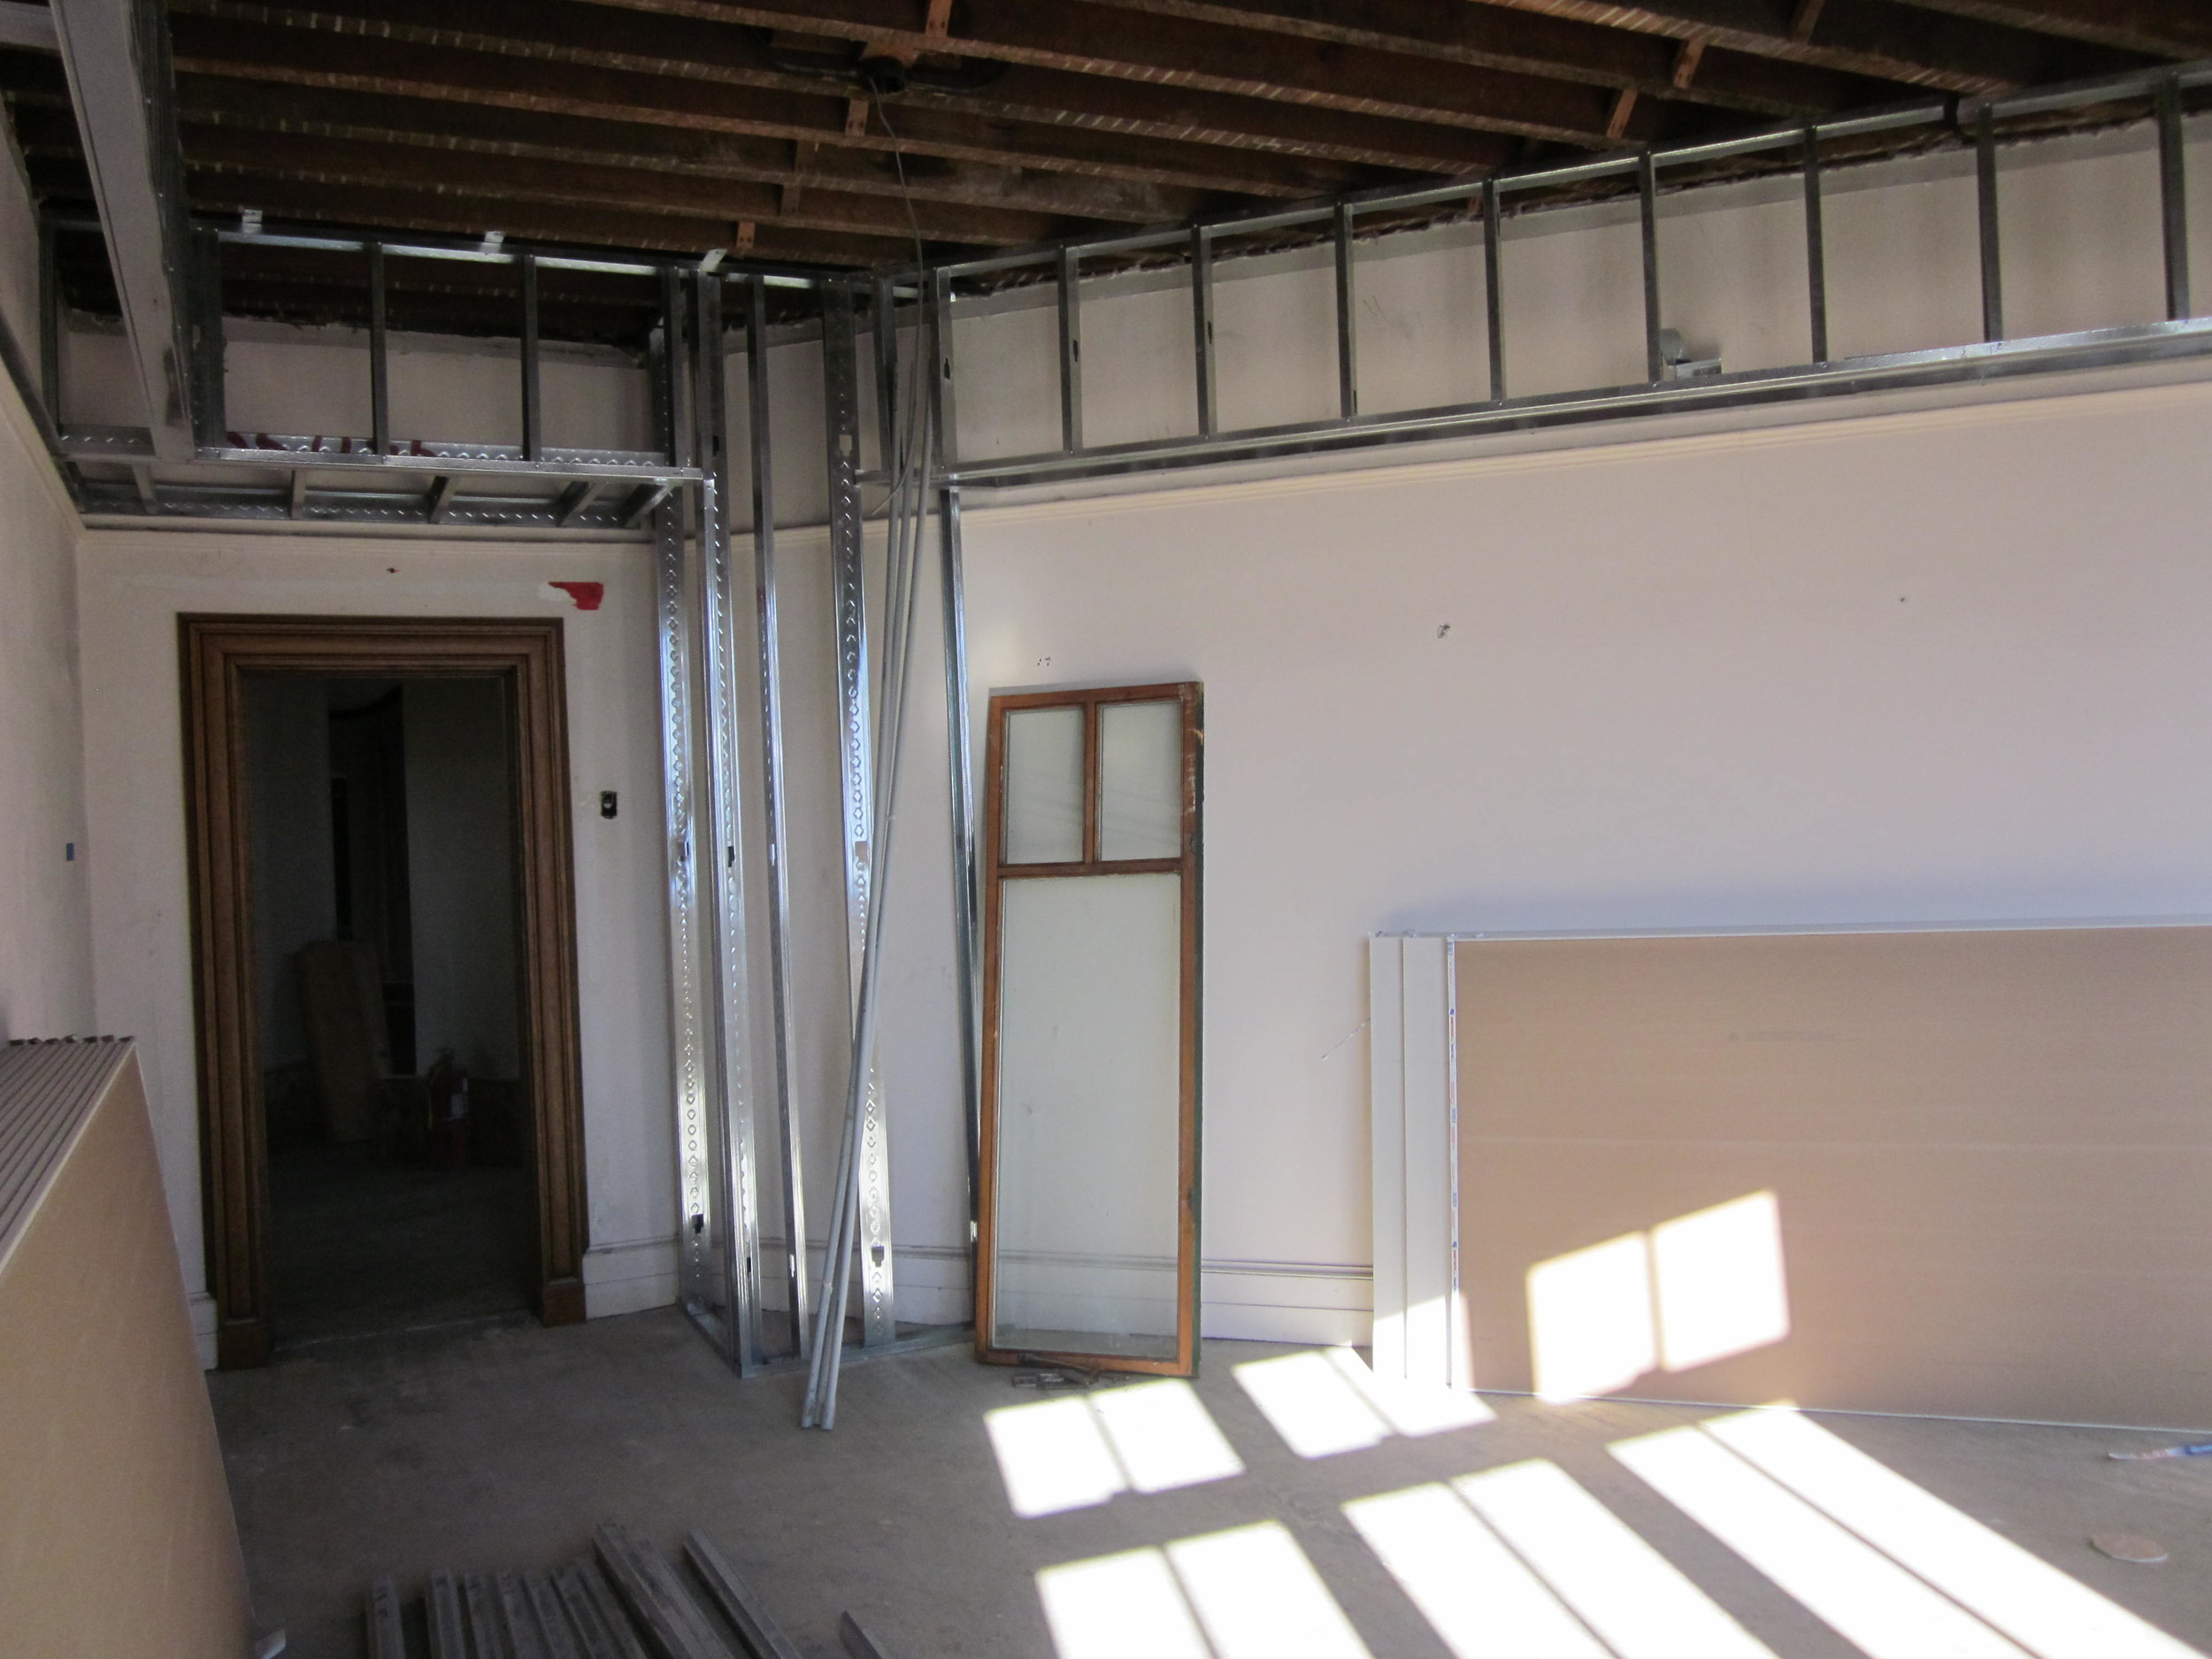 Triangle reading room will have some additions for electrical upgrades and new HVAC